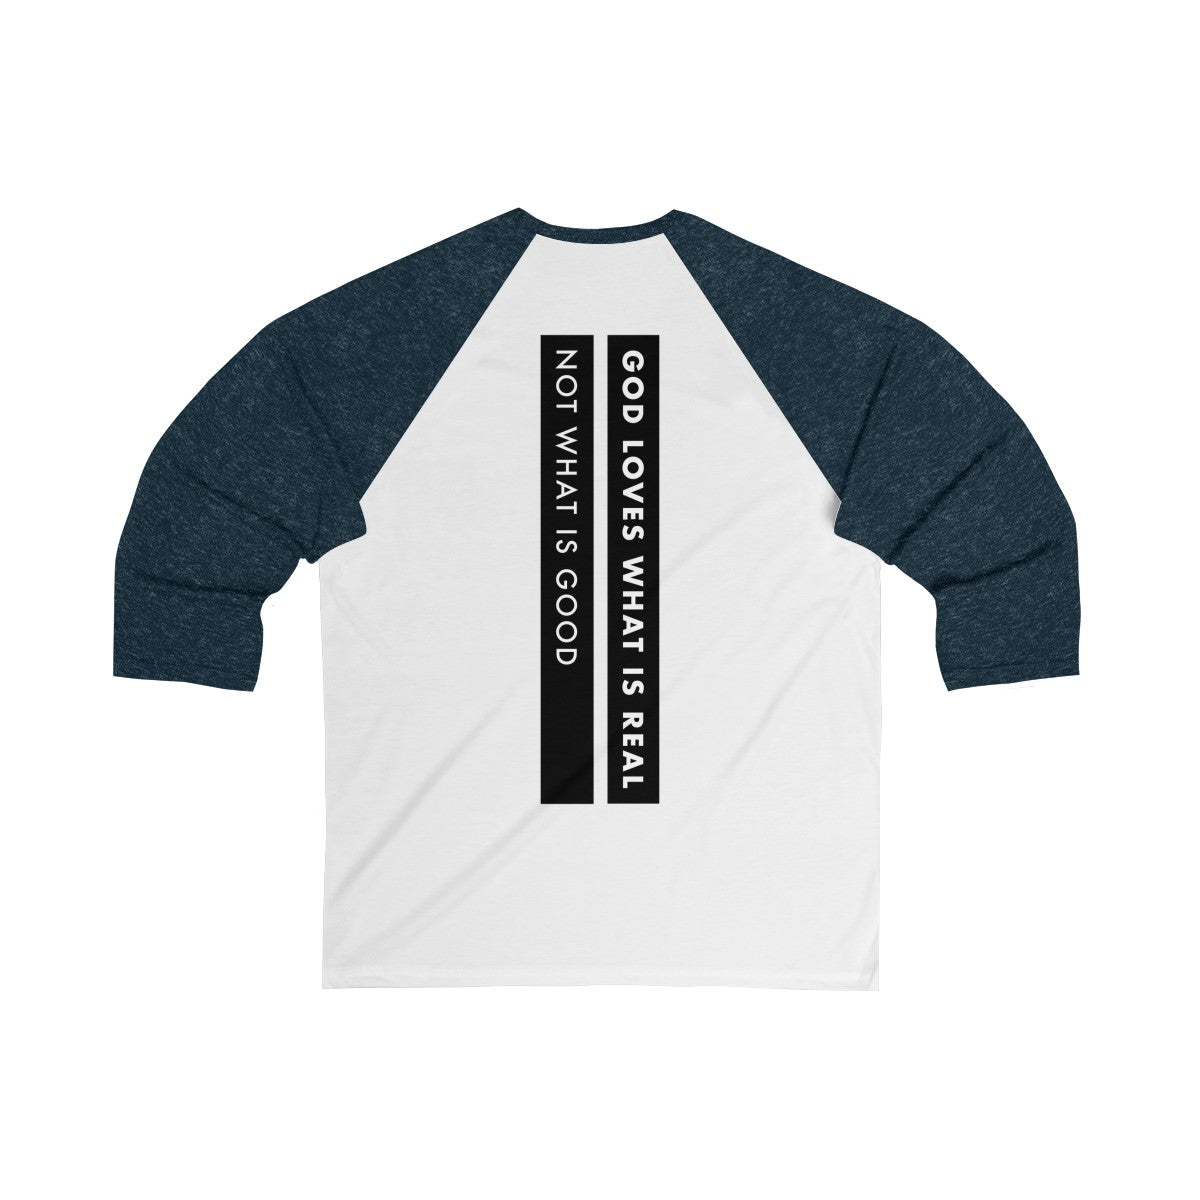 God Loves What Is Real Not What Is Good Unisex 3/4 Sleeve Baseball Tee